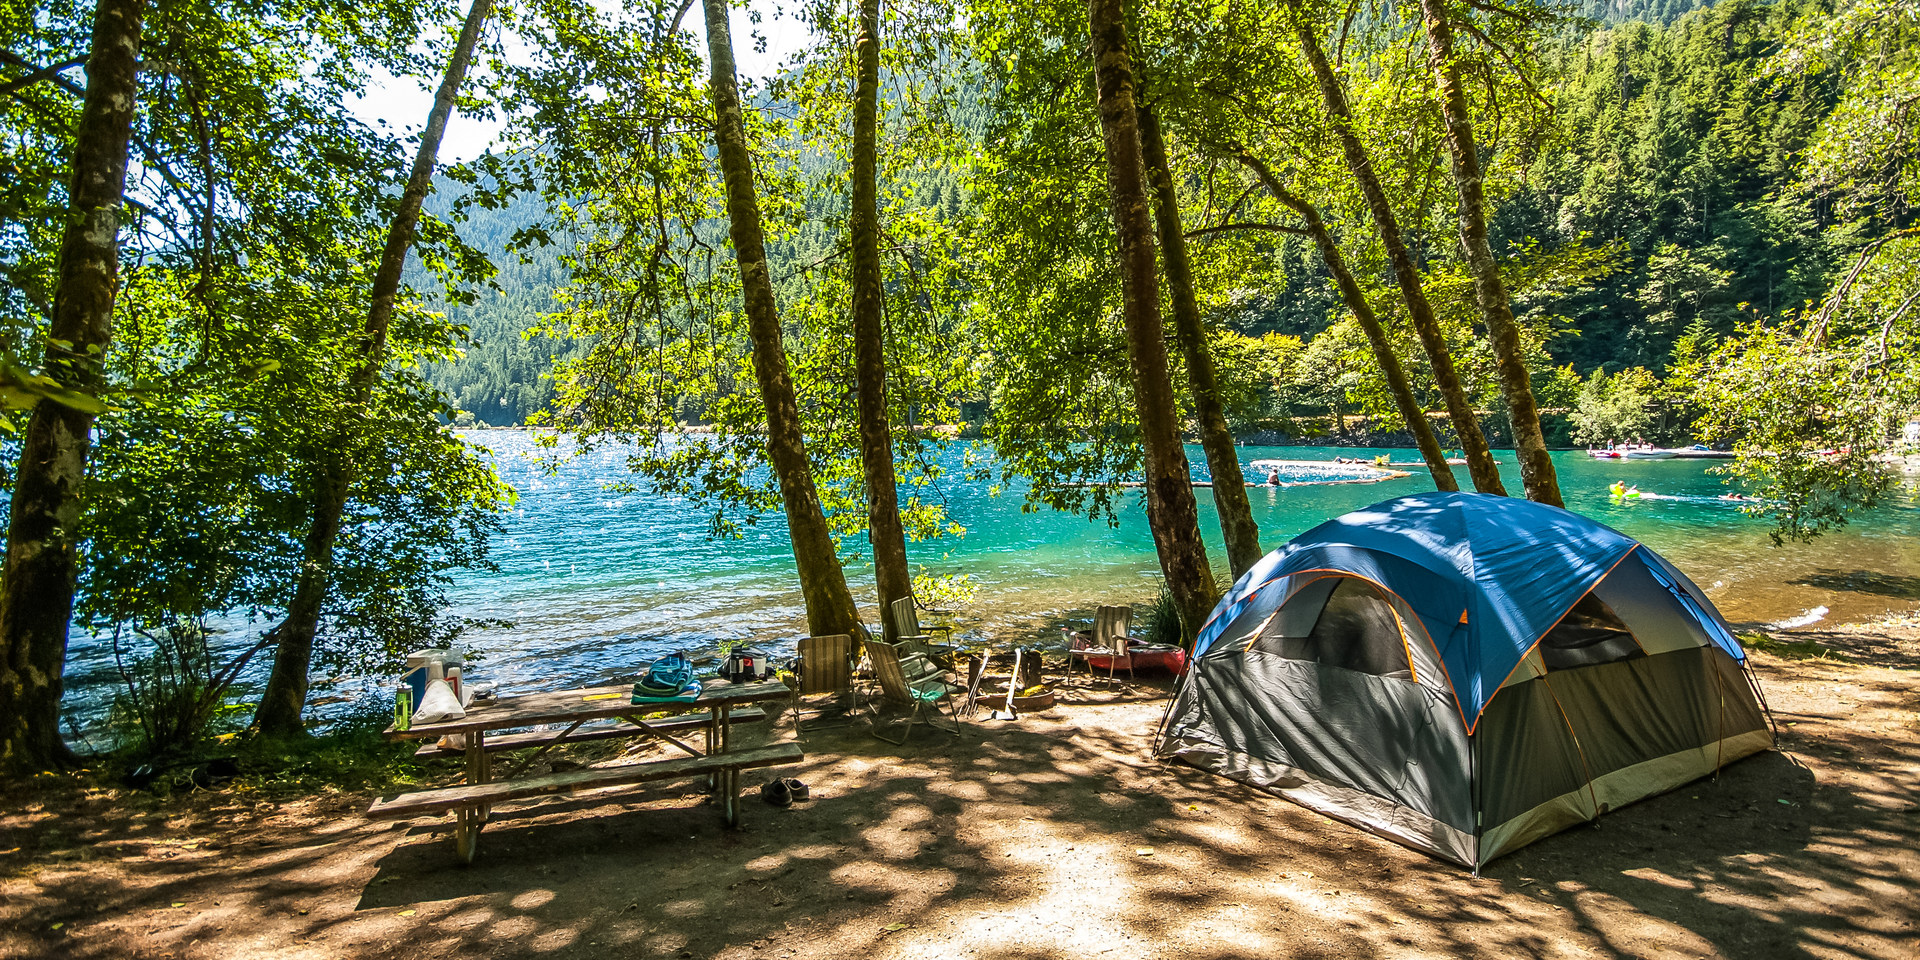 A Complete Guide to Camping in Olympic National Park - Outdoor Project